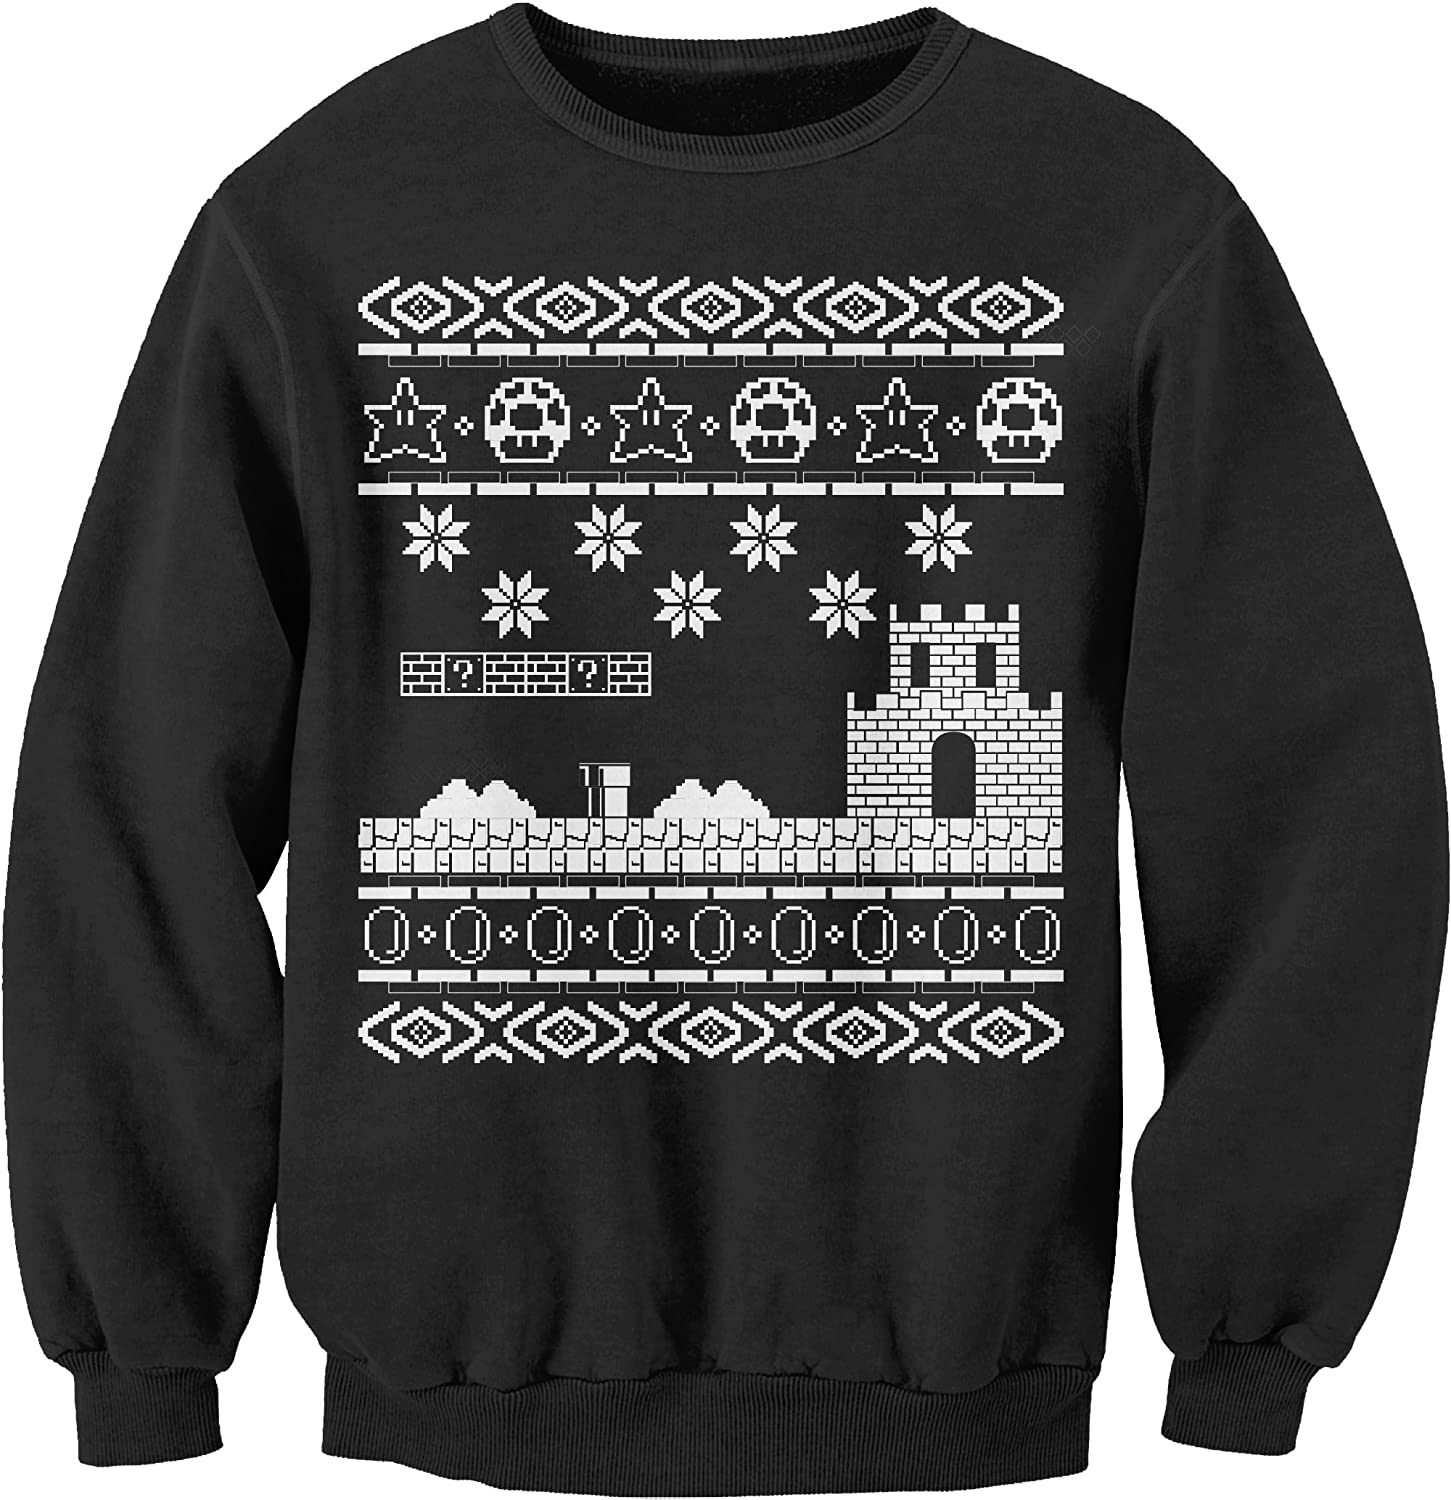 Amazon.com: Sweater: Retro Video Games Ugly Christmas Sweater: Clothing